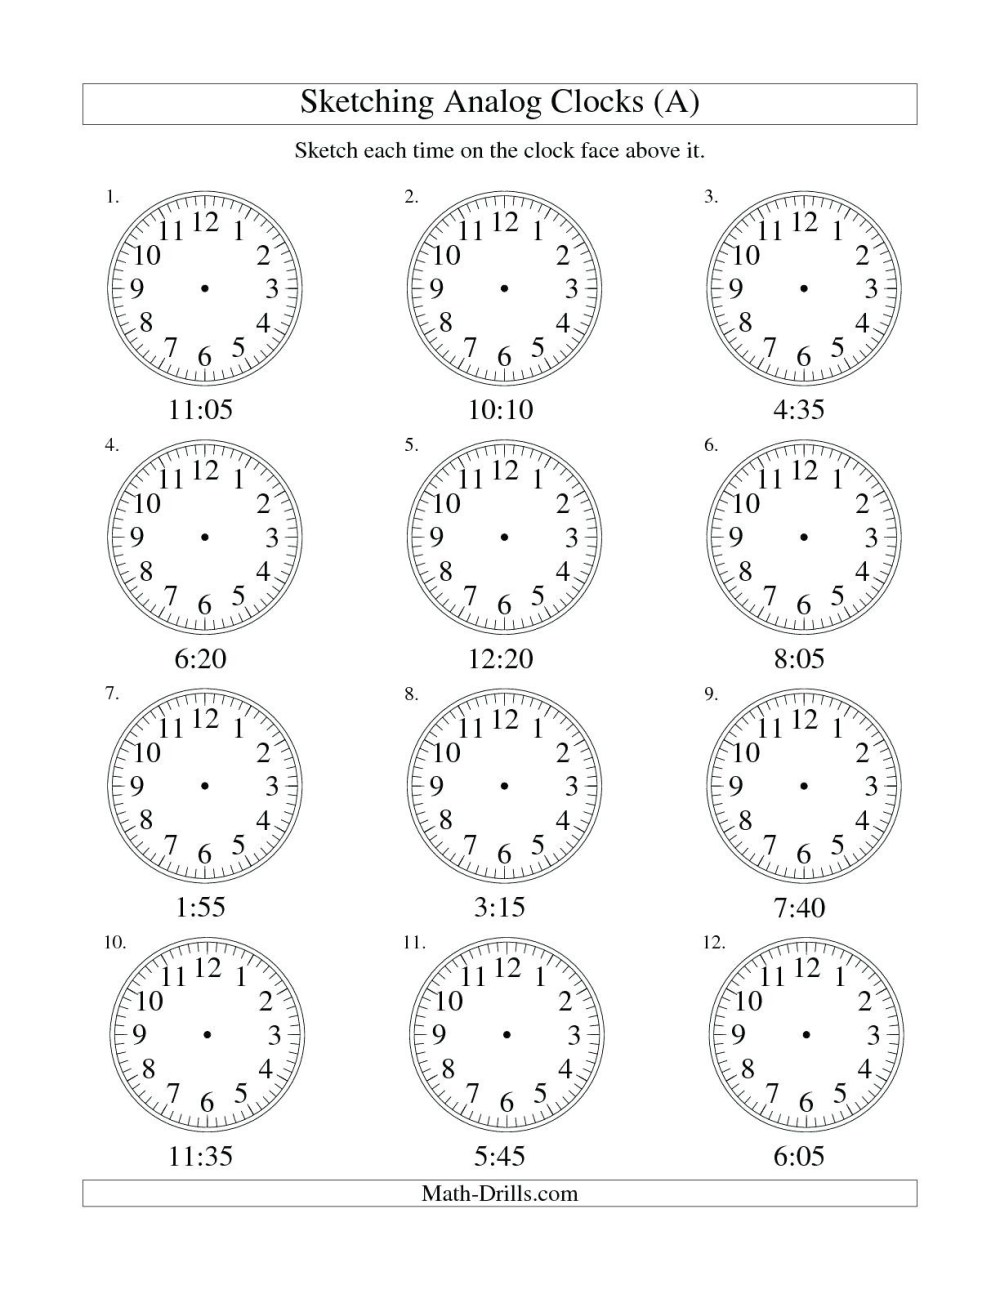 medium resolution of 4 Free Math Worksheets First Grade 1 Addition Missing Addend Sum Under 10 -  apocalomegaproductions.com